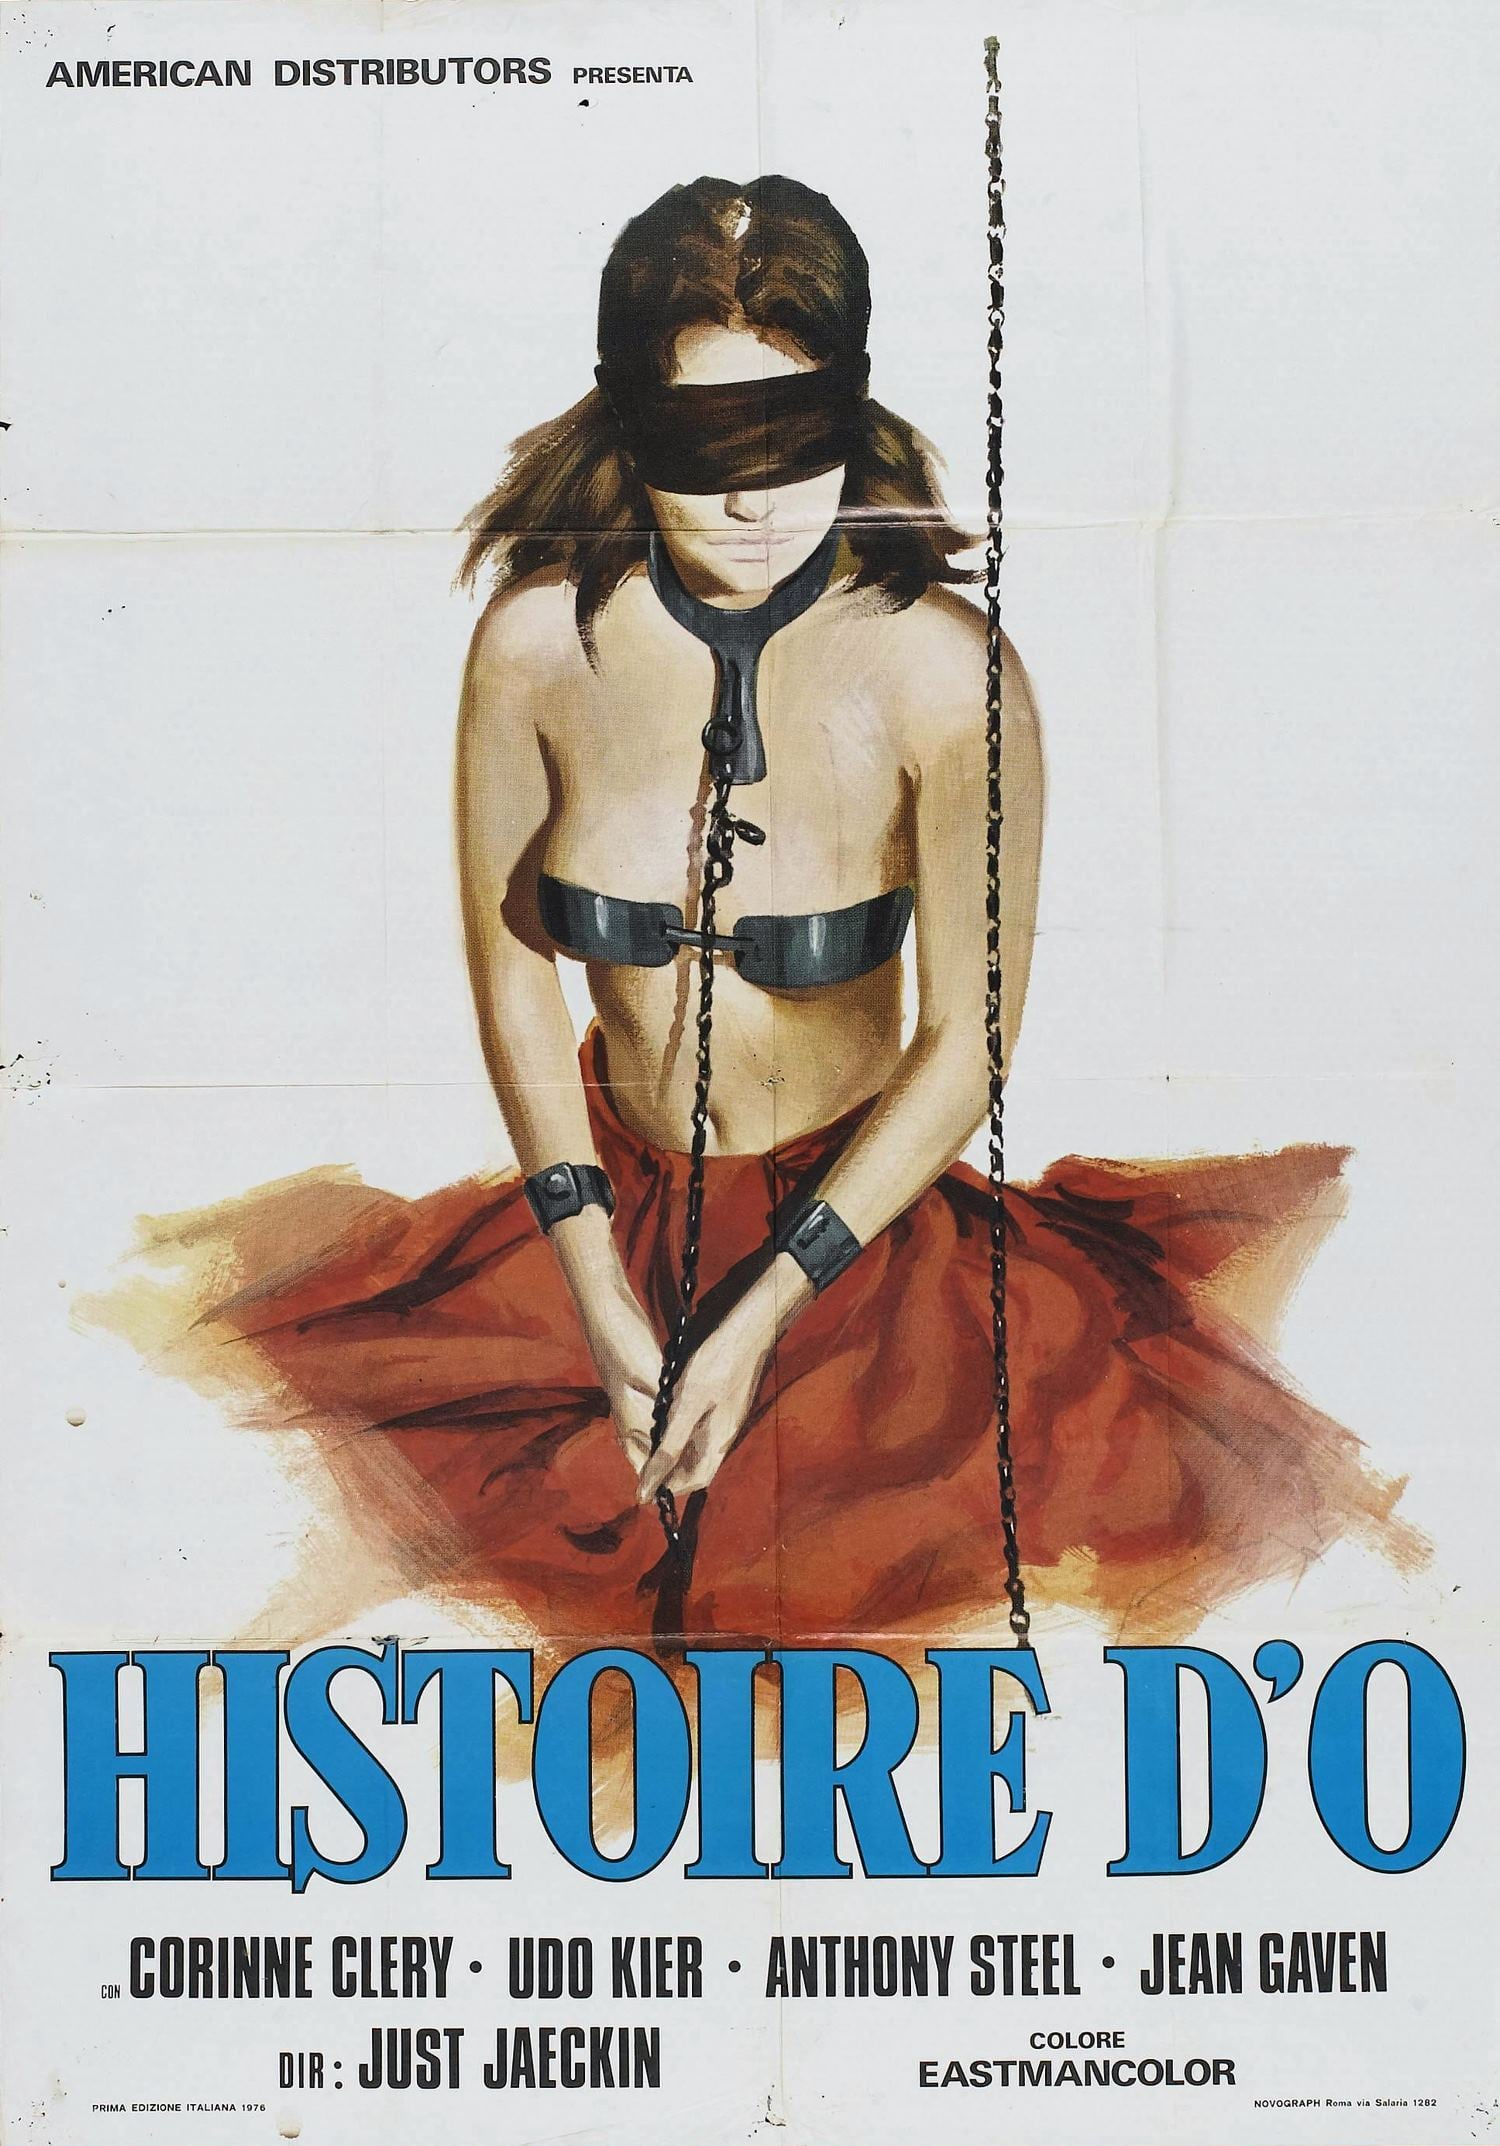 Story of O poster